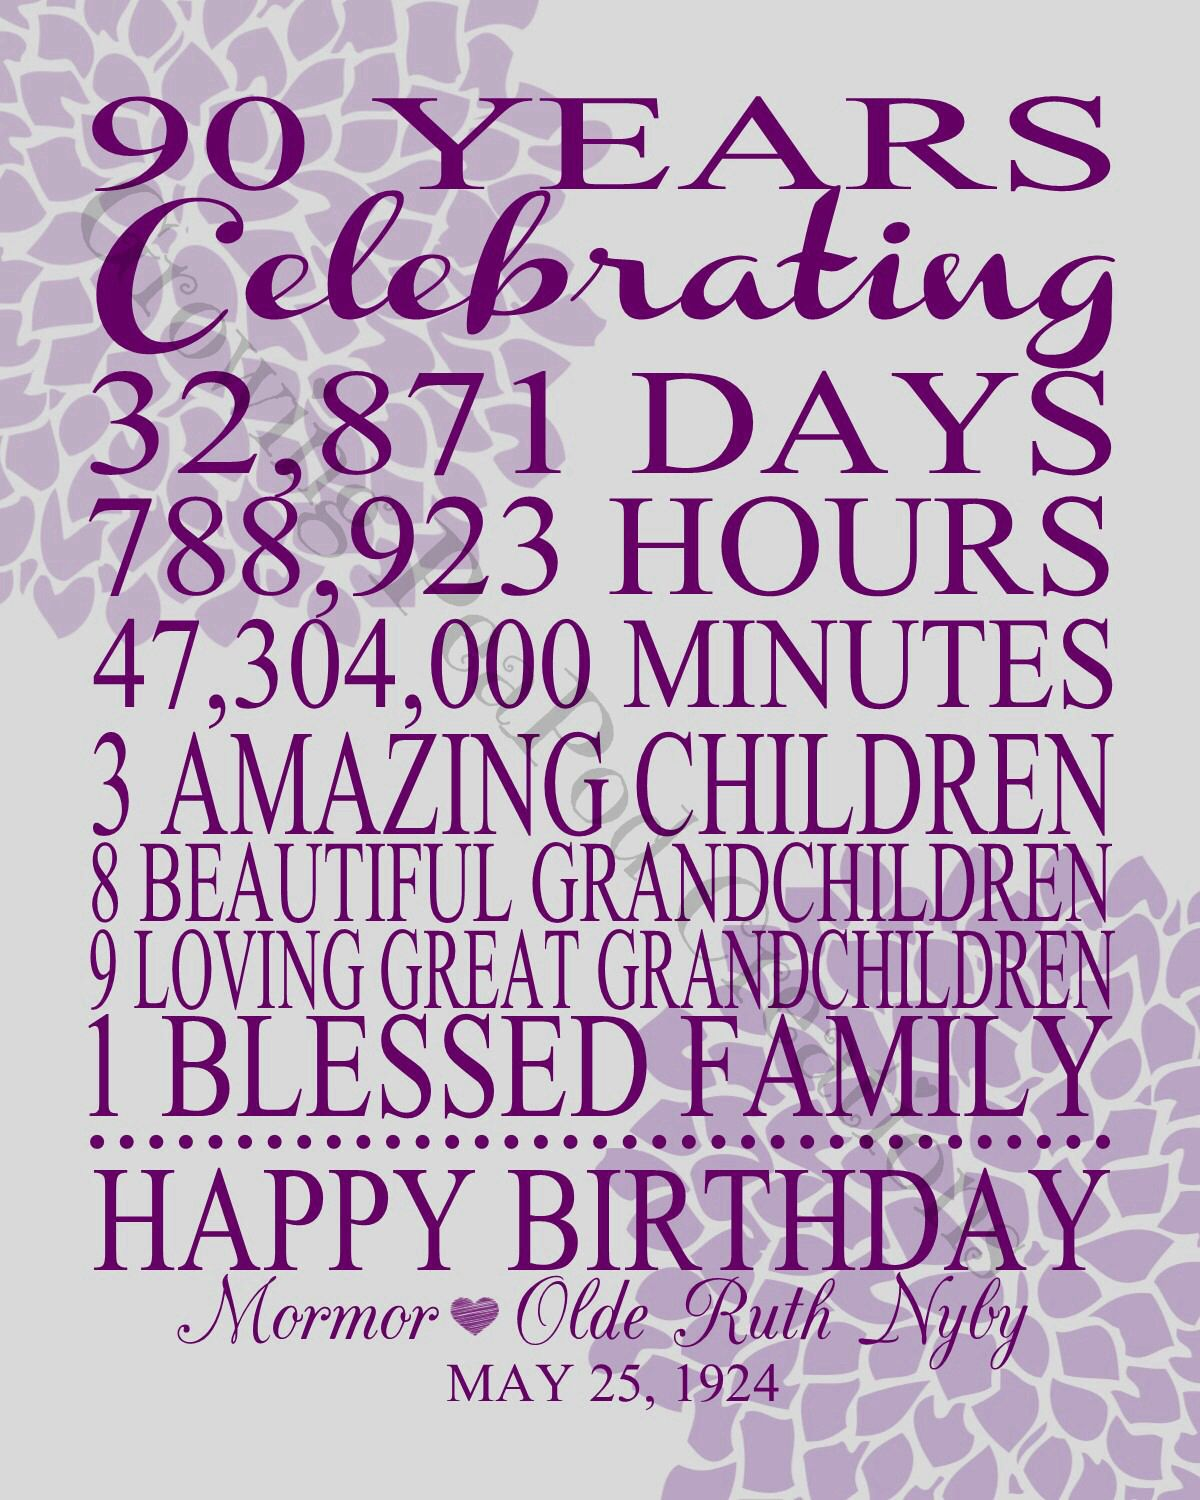 90th birthday gift httpsfacebookpeapodcreations 90th birthday gift httpsfacebookpeapodcreations negle Images